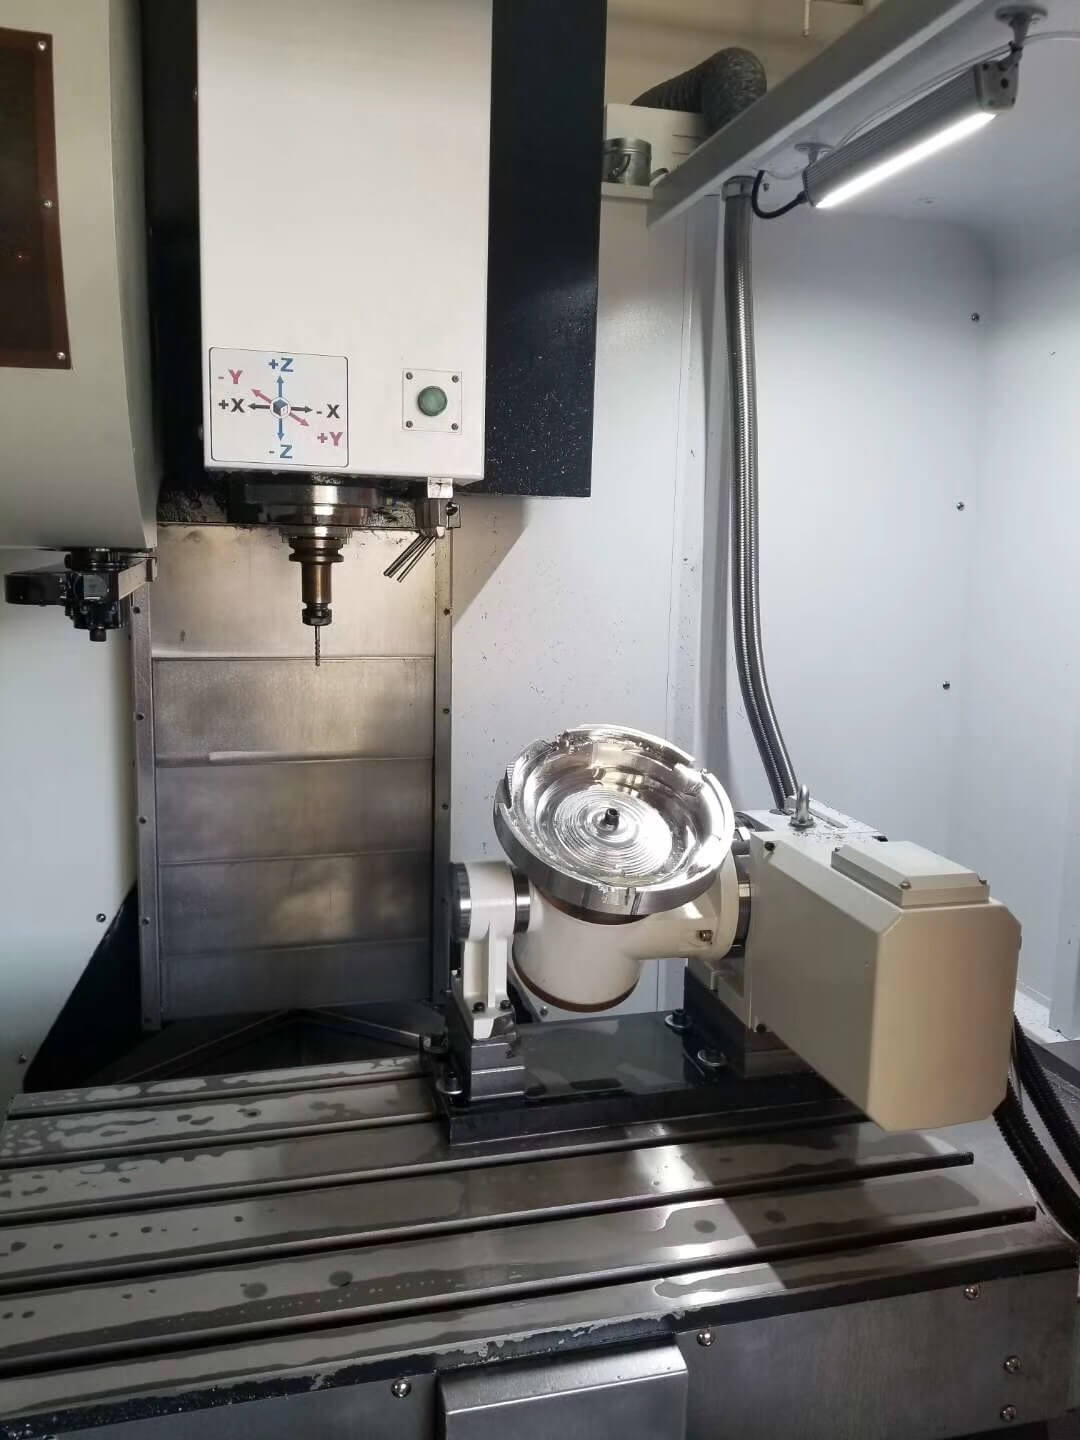 Small 5 axis CNC milling machine